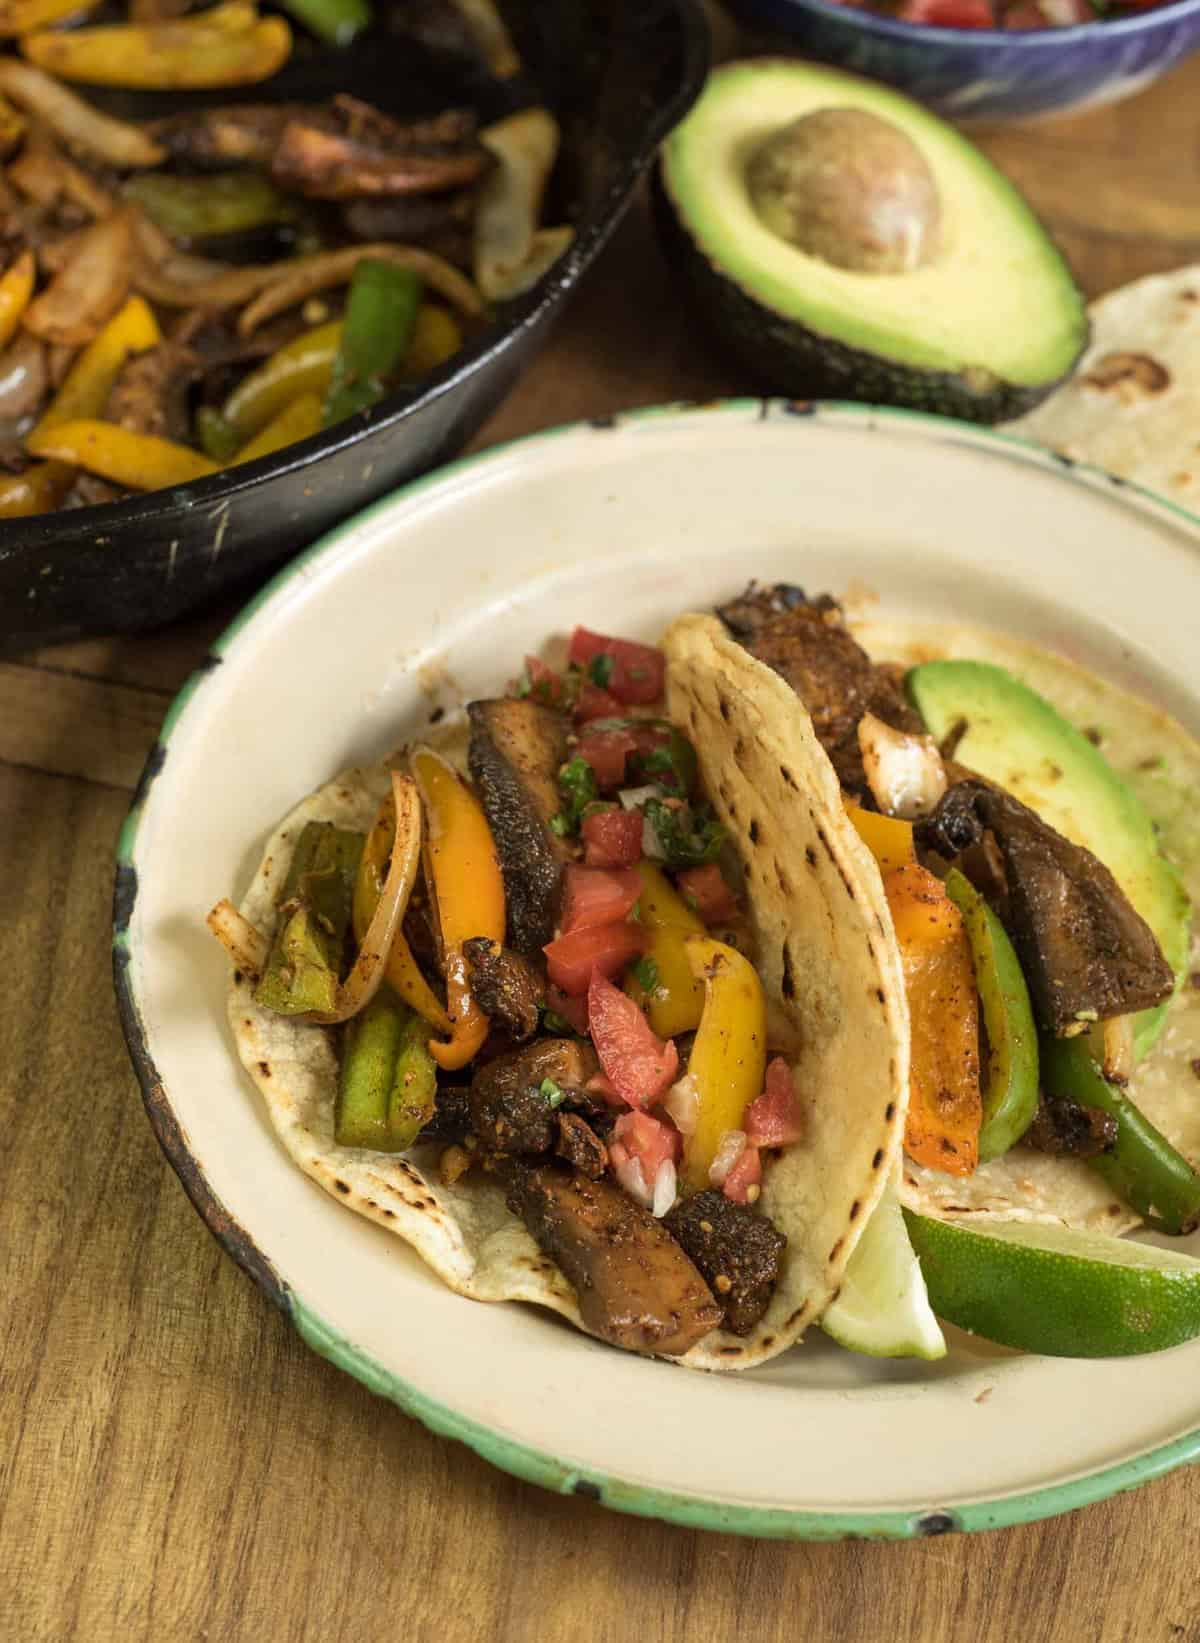 tacos on a plate with an avocado to the side